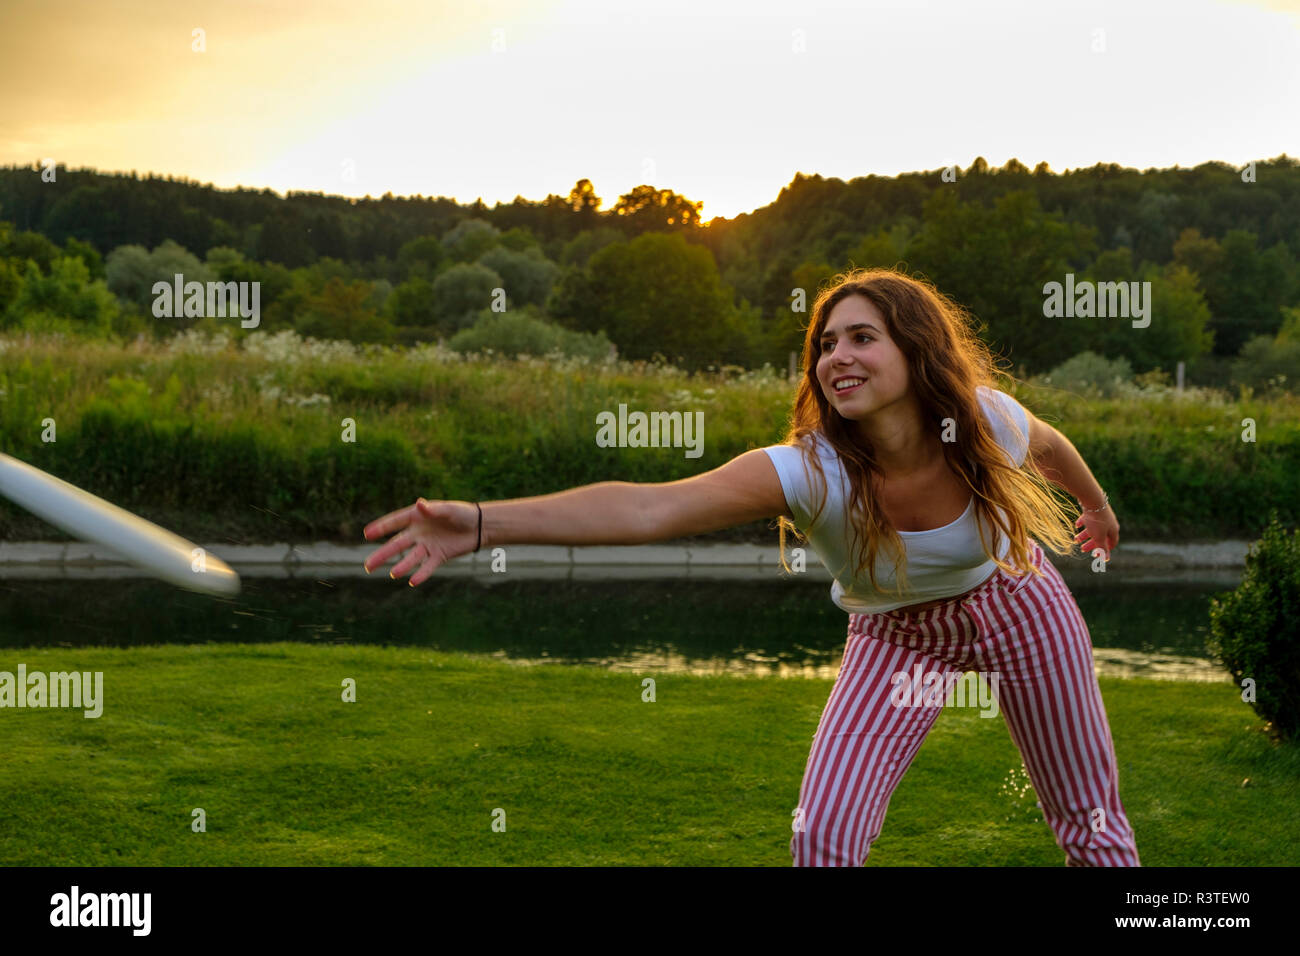 Giovane donna gettando flying disc Foto Stock